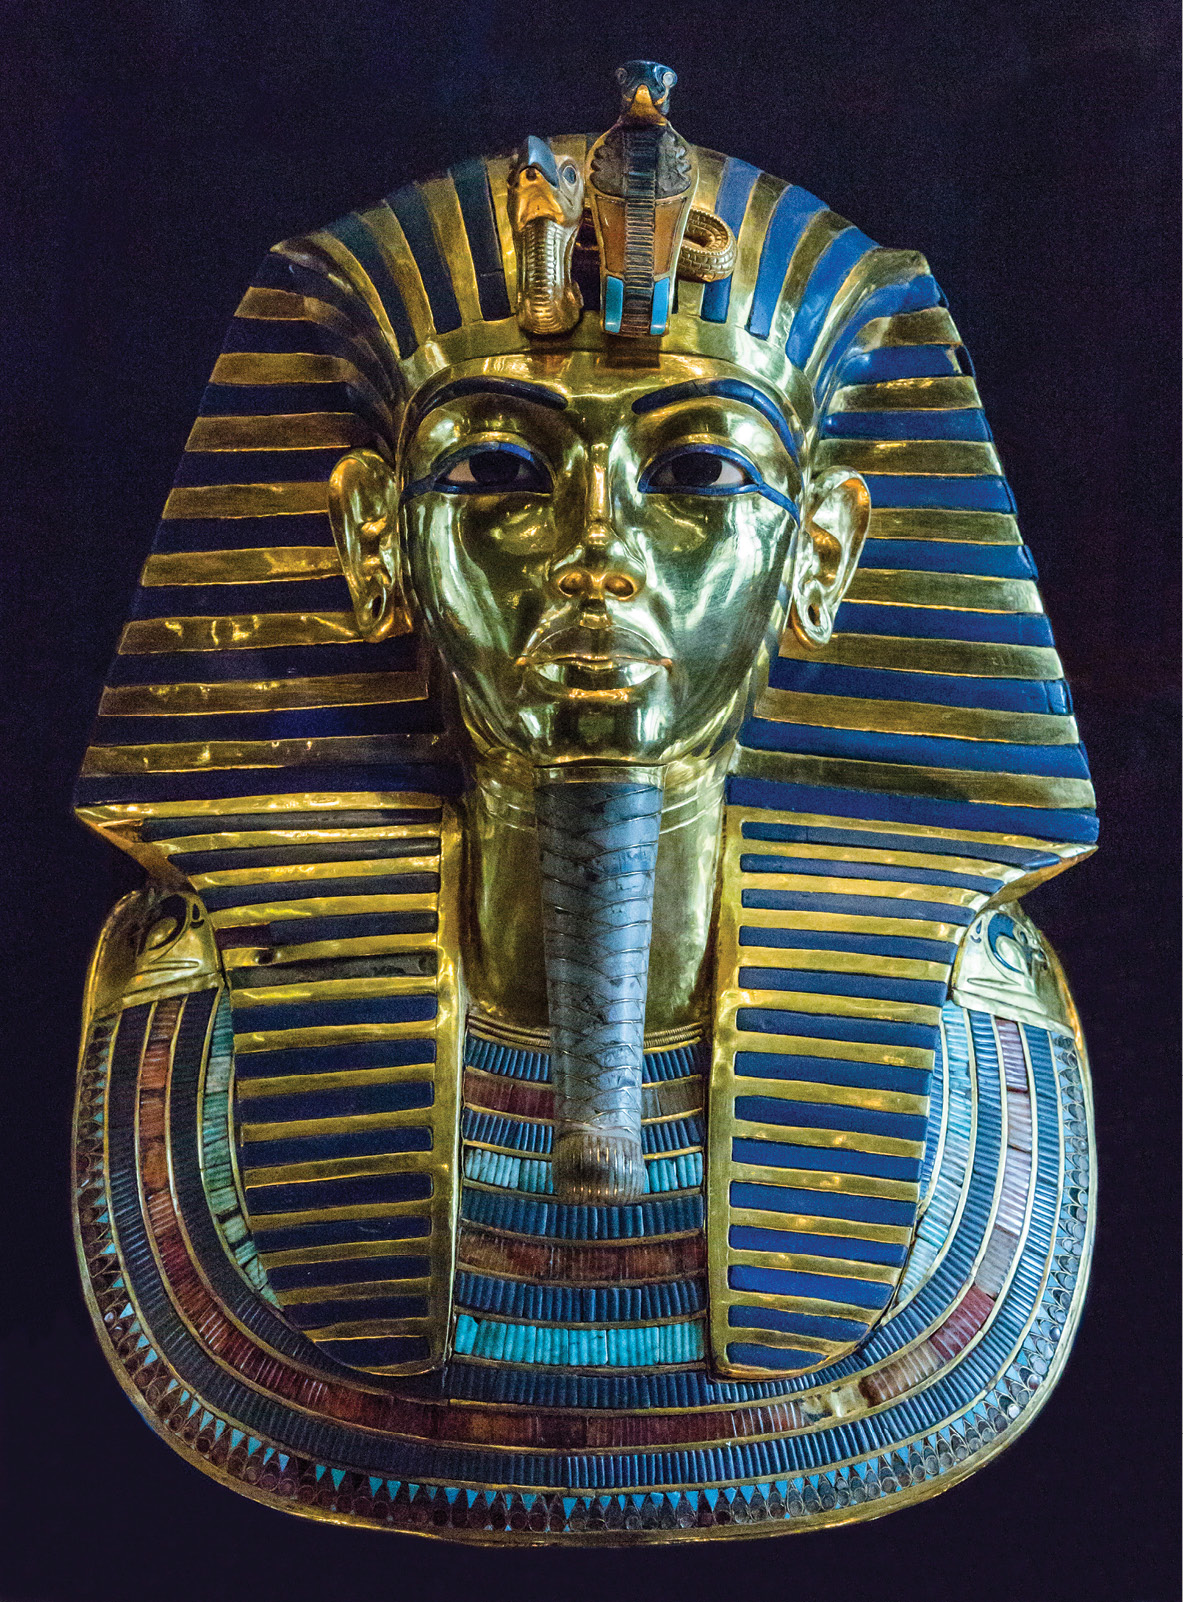 LEFT The golden funerary mask of Tutankhamun, brought to light by Howard Carter and his team in 1922, quickly becoming perhaps the most famous of all archaeological finds.